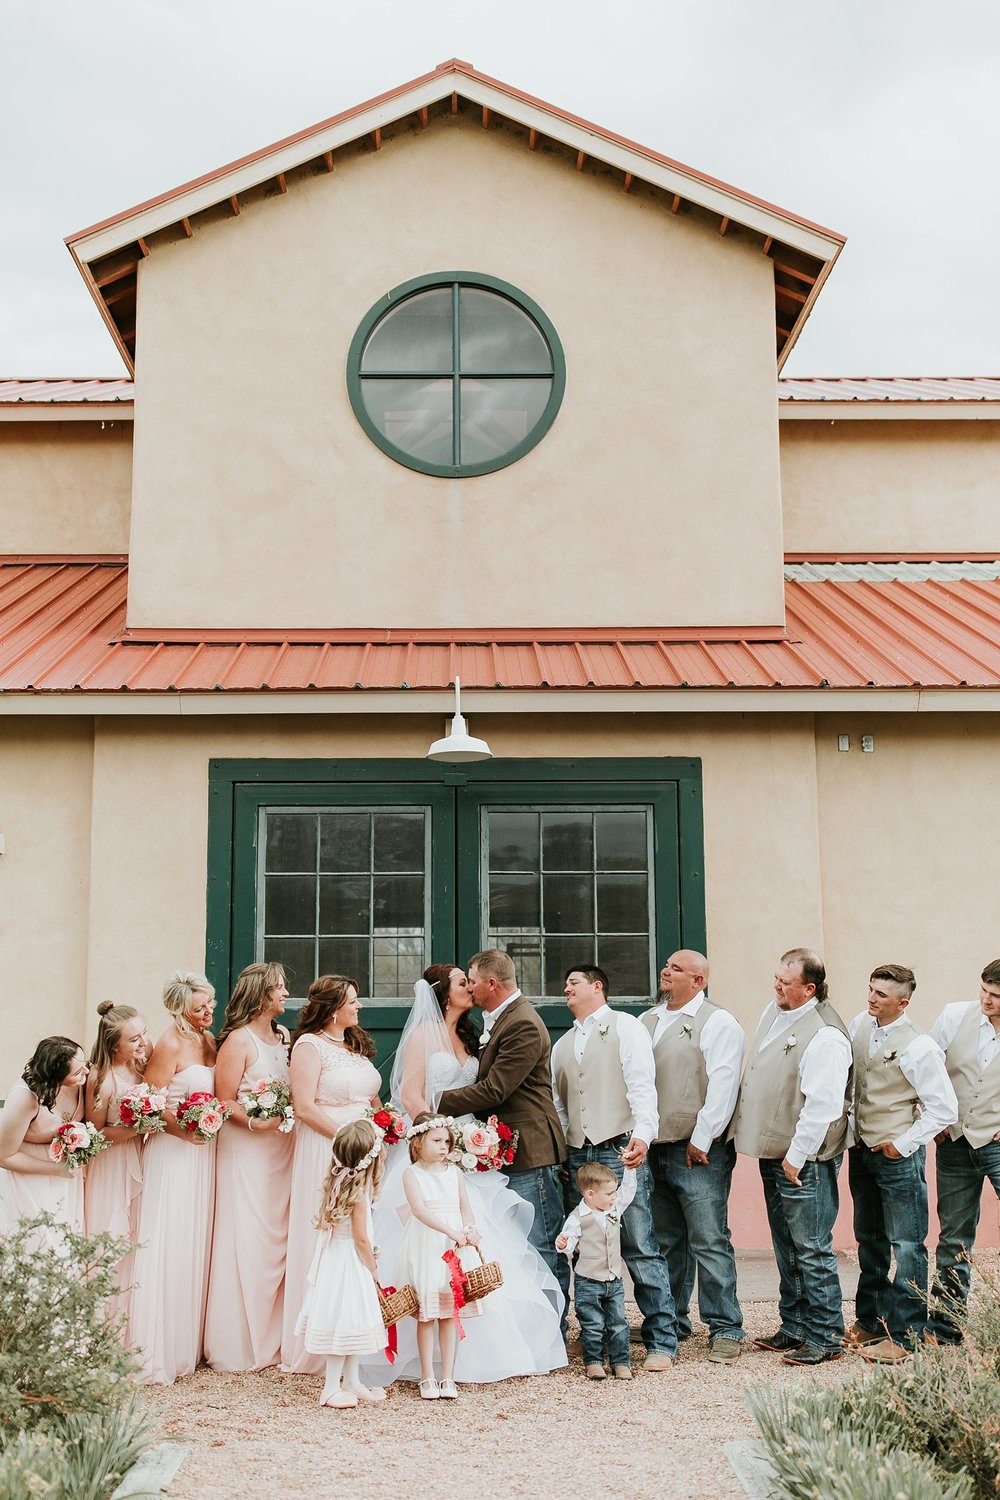 Alicia+lucia+photography+-+albuquerque+wedding+photographer+-+santa+fe+wedding+photography+-+new+mexico+wedding+photographer+-+new+mexico+engagement+-+la+mesita+ranch+wedding+-+la+mesita+ranch+spring+wedding_0040.jpg